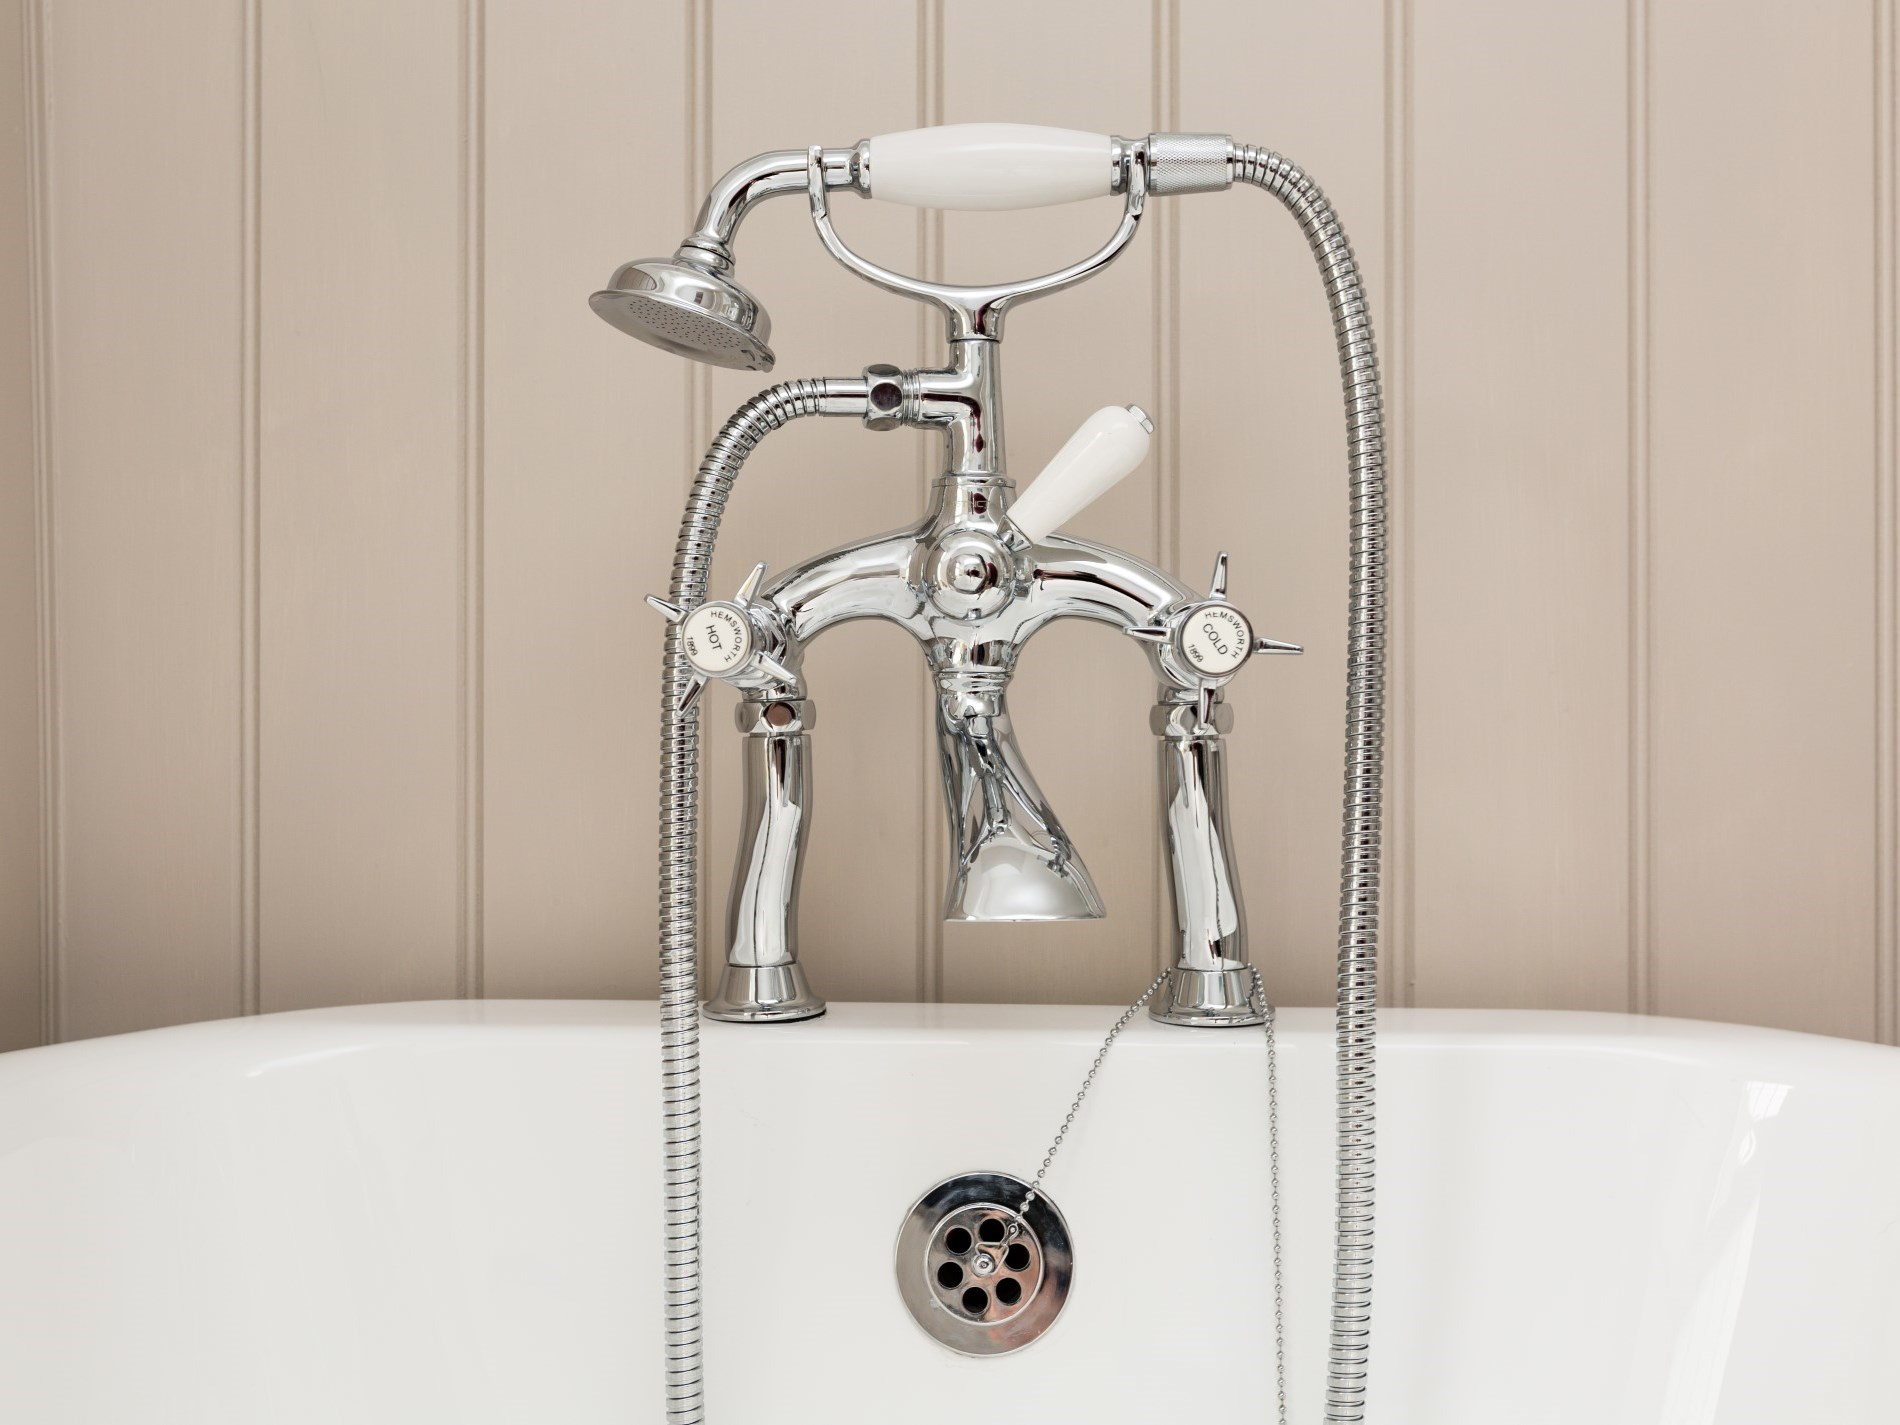 Traditional mixer taps add to the overall effect